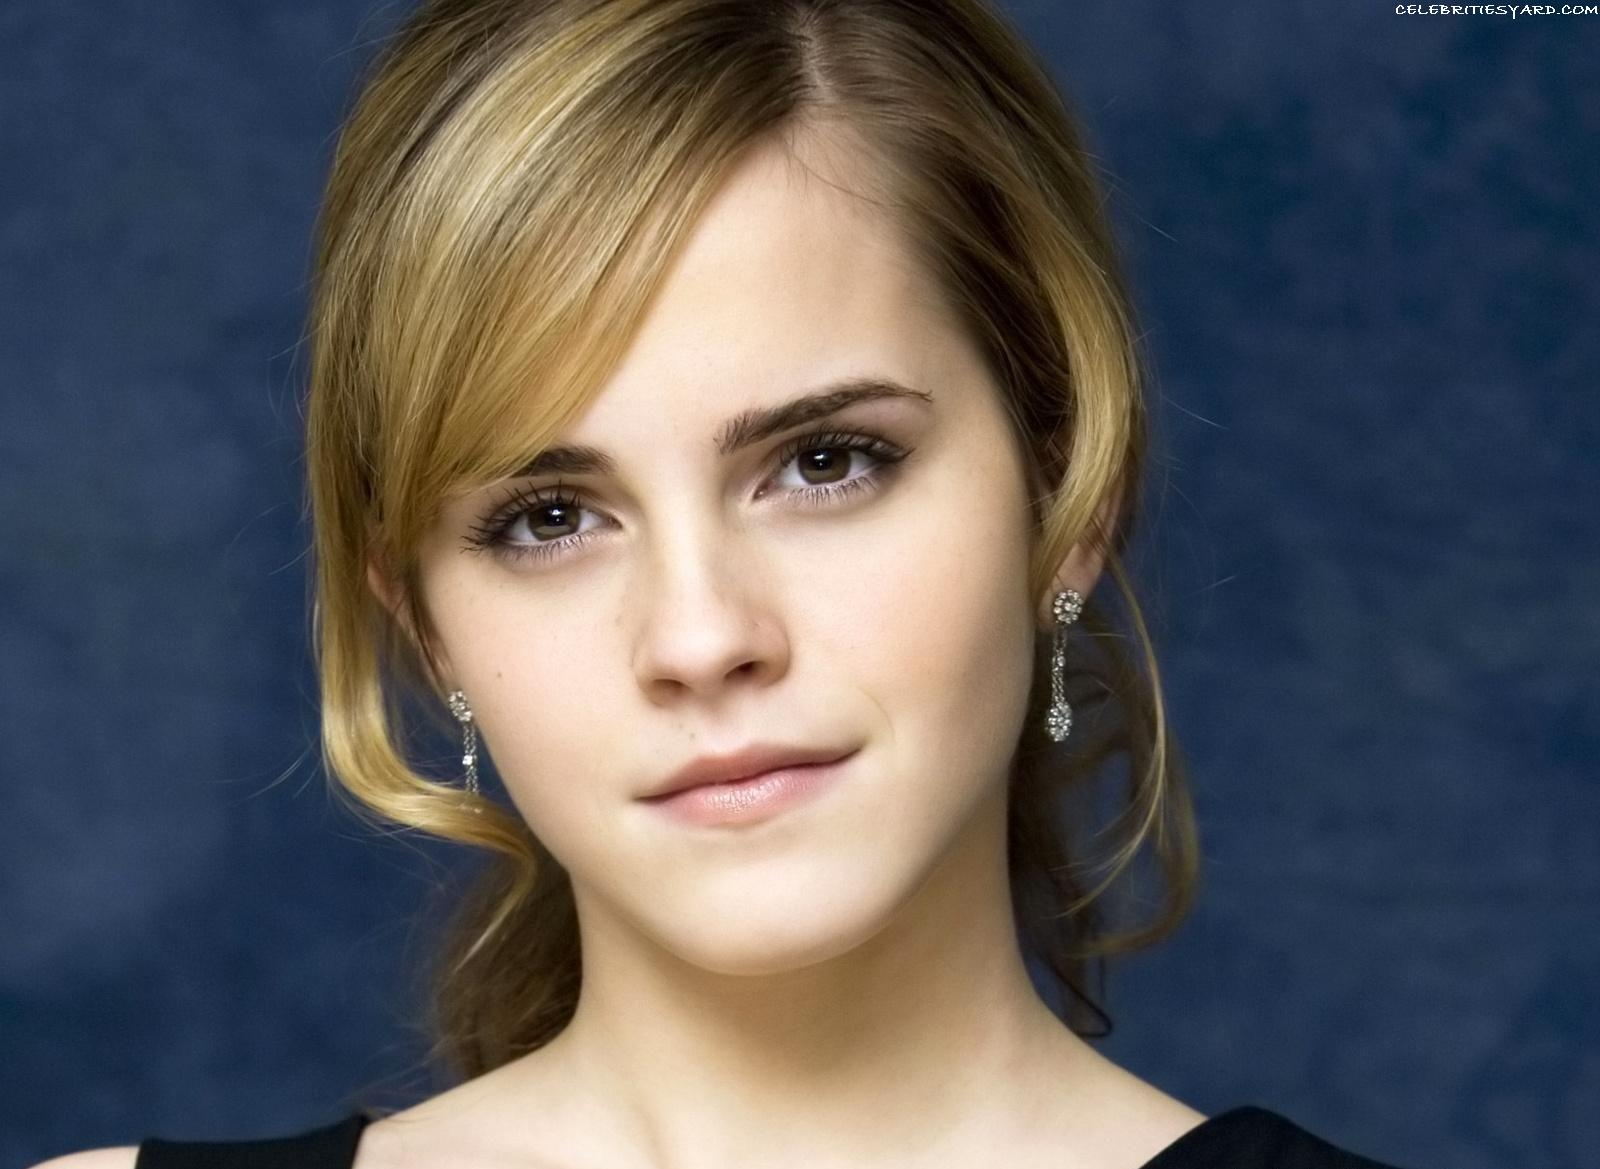 http://4.bp.blogspot.com/-VeUH6hVGa64/T7RcHLRzDpI/AAAAAAAACiQ/2OH0FRD2DuM/s1600/The-best-top-desktop-emma-watson-wallpapers-emma-watson-wallpaper-hd-16.jpg